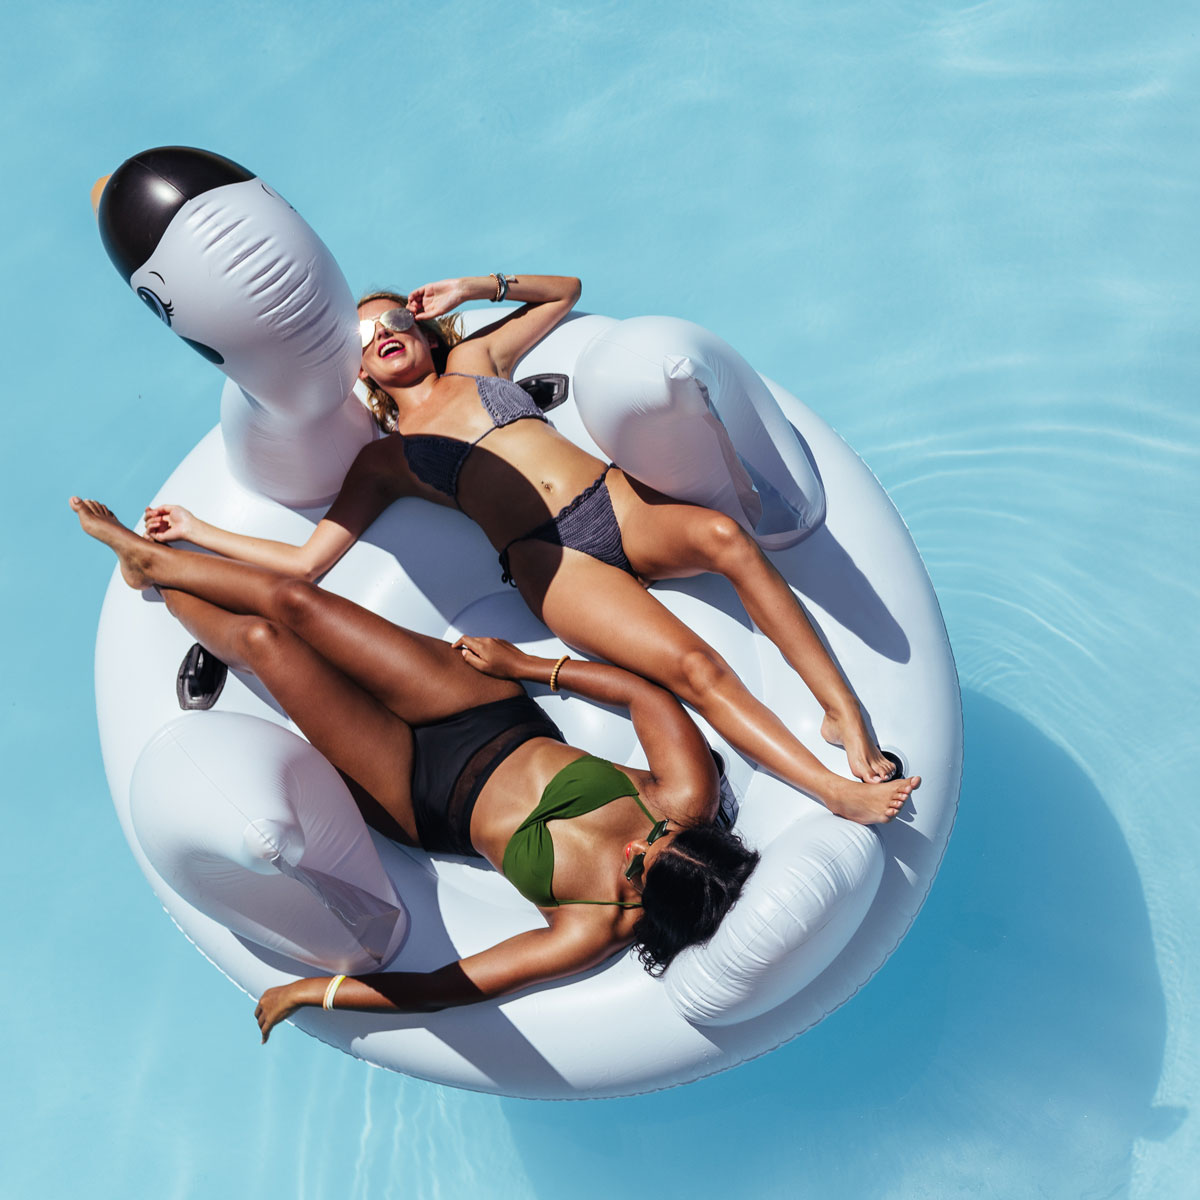 Two Women Laying on Floaty in Pool